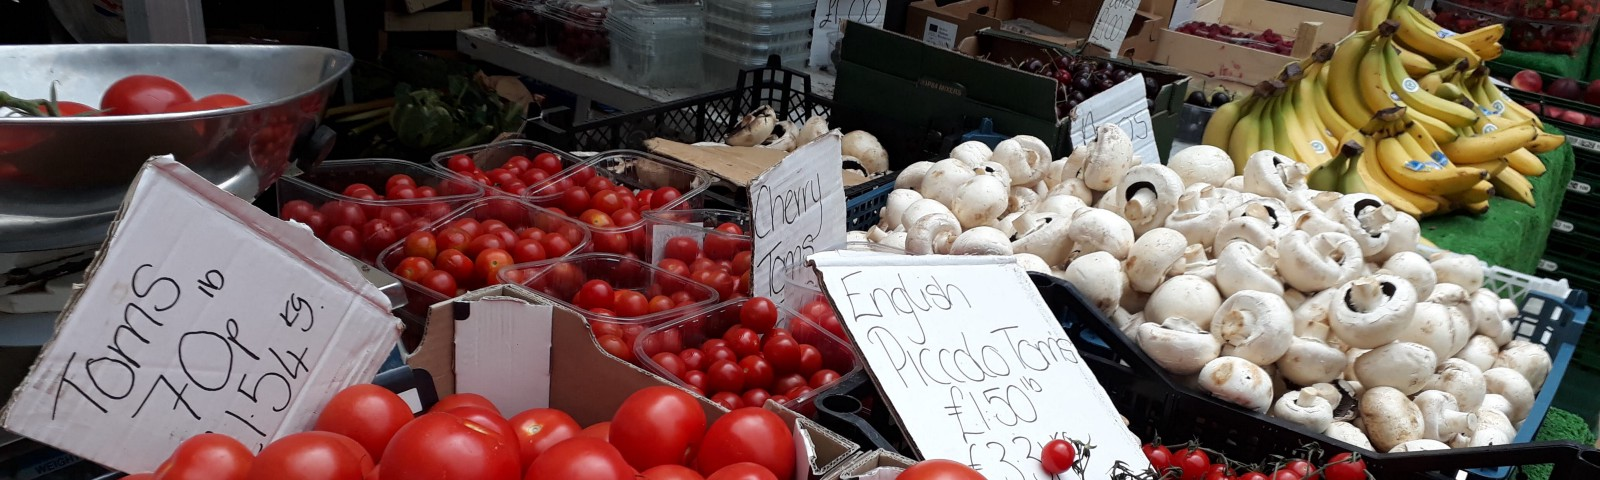 fruit and vegetable stall Lincoln Central Market facing eviction